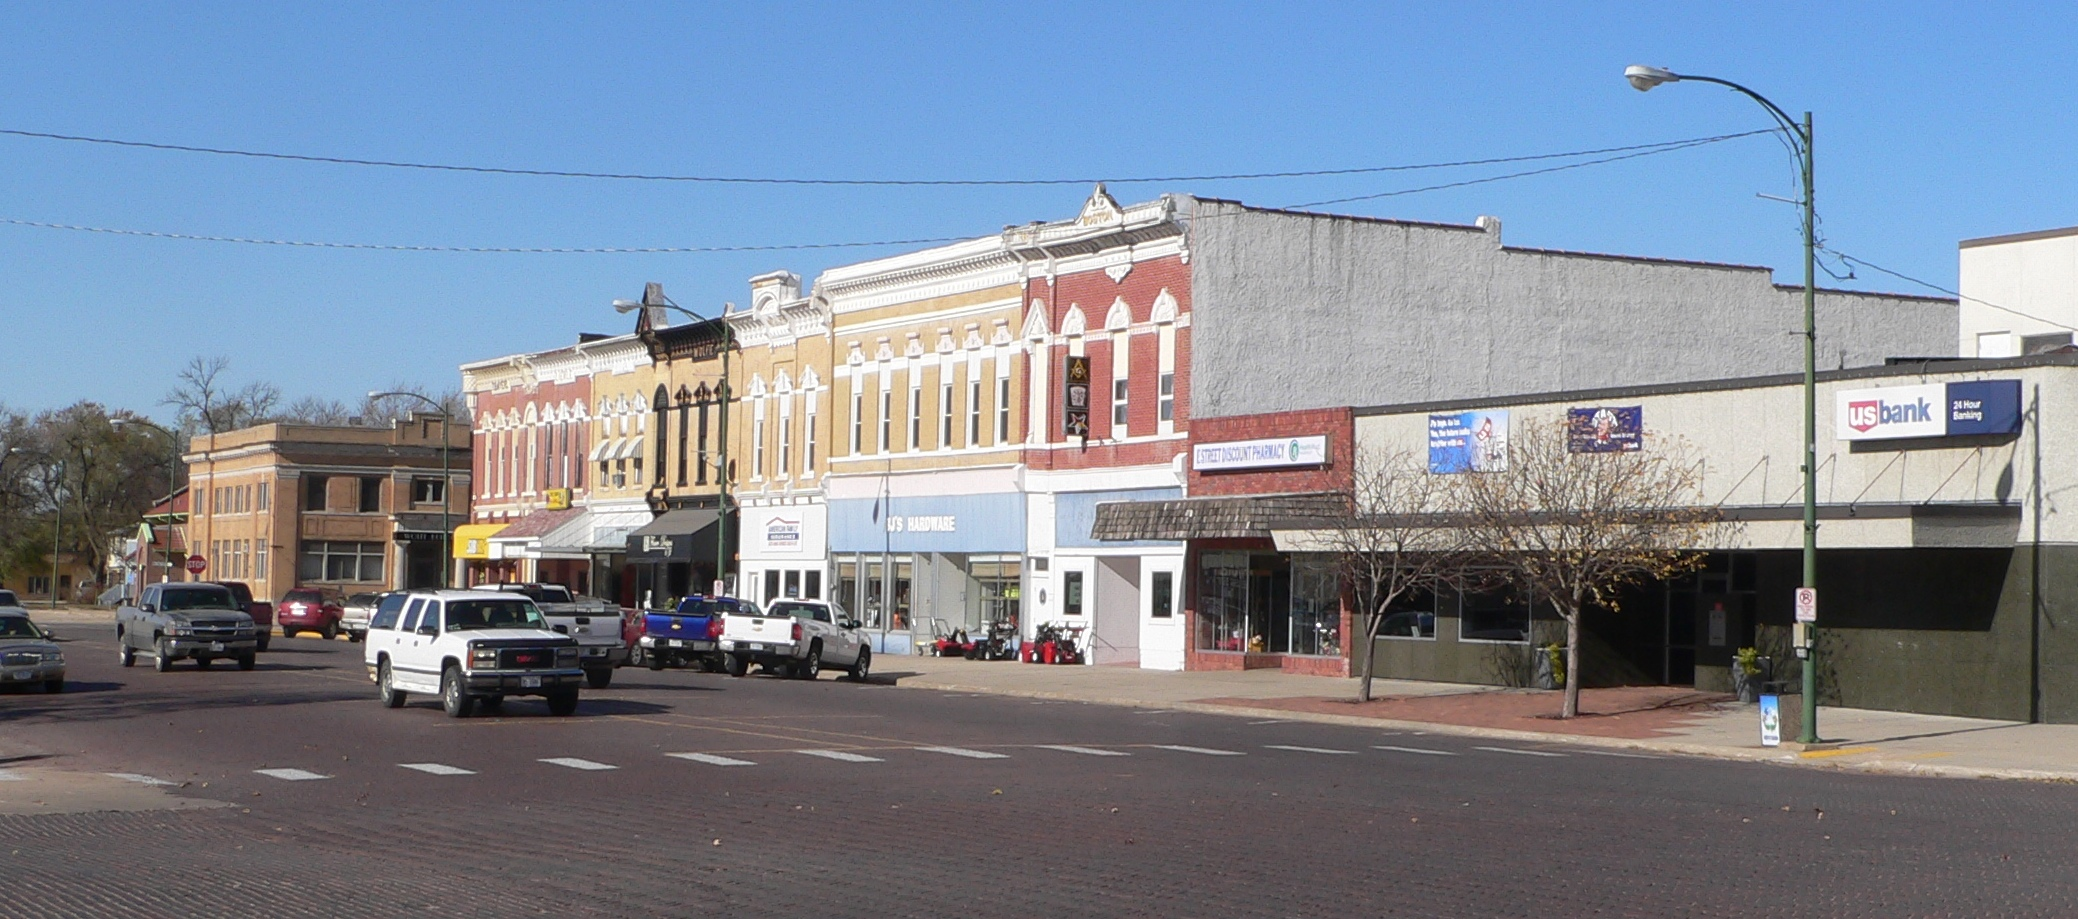 David City, Nebraska - Wikipedia, the free encyclopediadavid city city